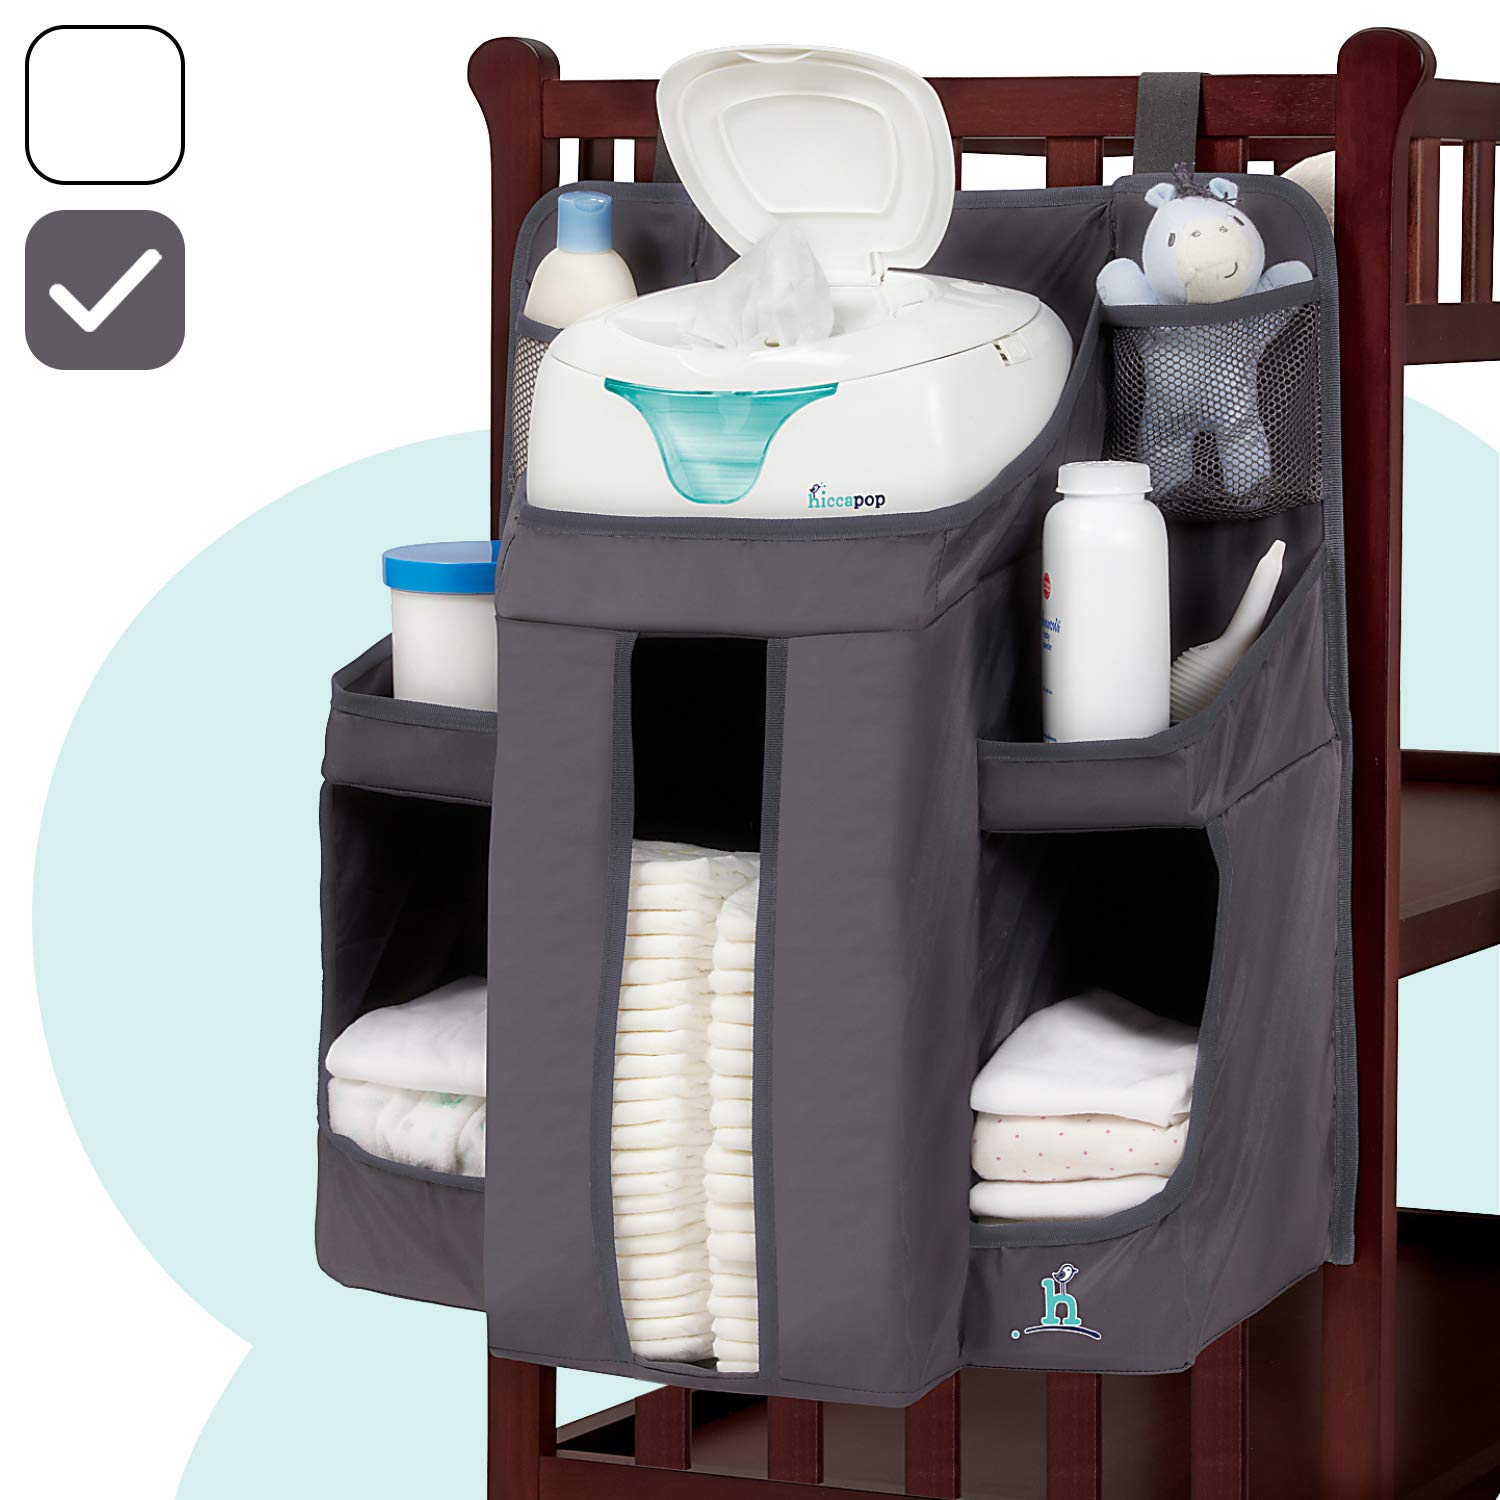 hiccapop Nursery Organizer and Baby Diaper Caddy | Hanging Diaper Organization Storage for Baby Essentials | Hang on Crib, Changing Table or Wall by hiccapop